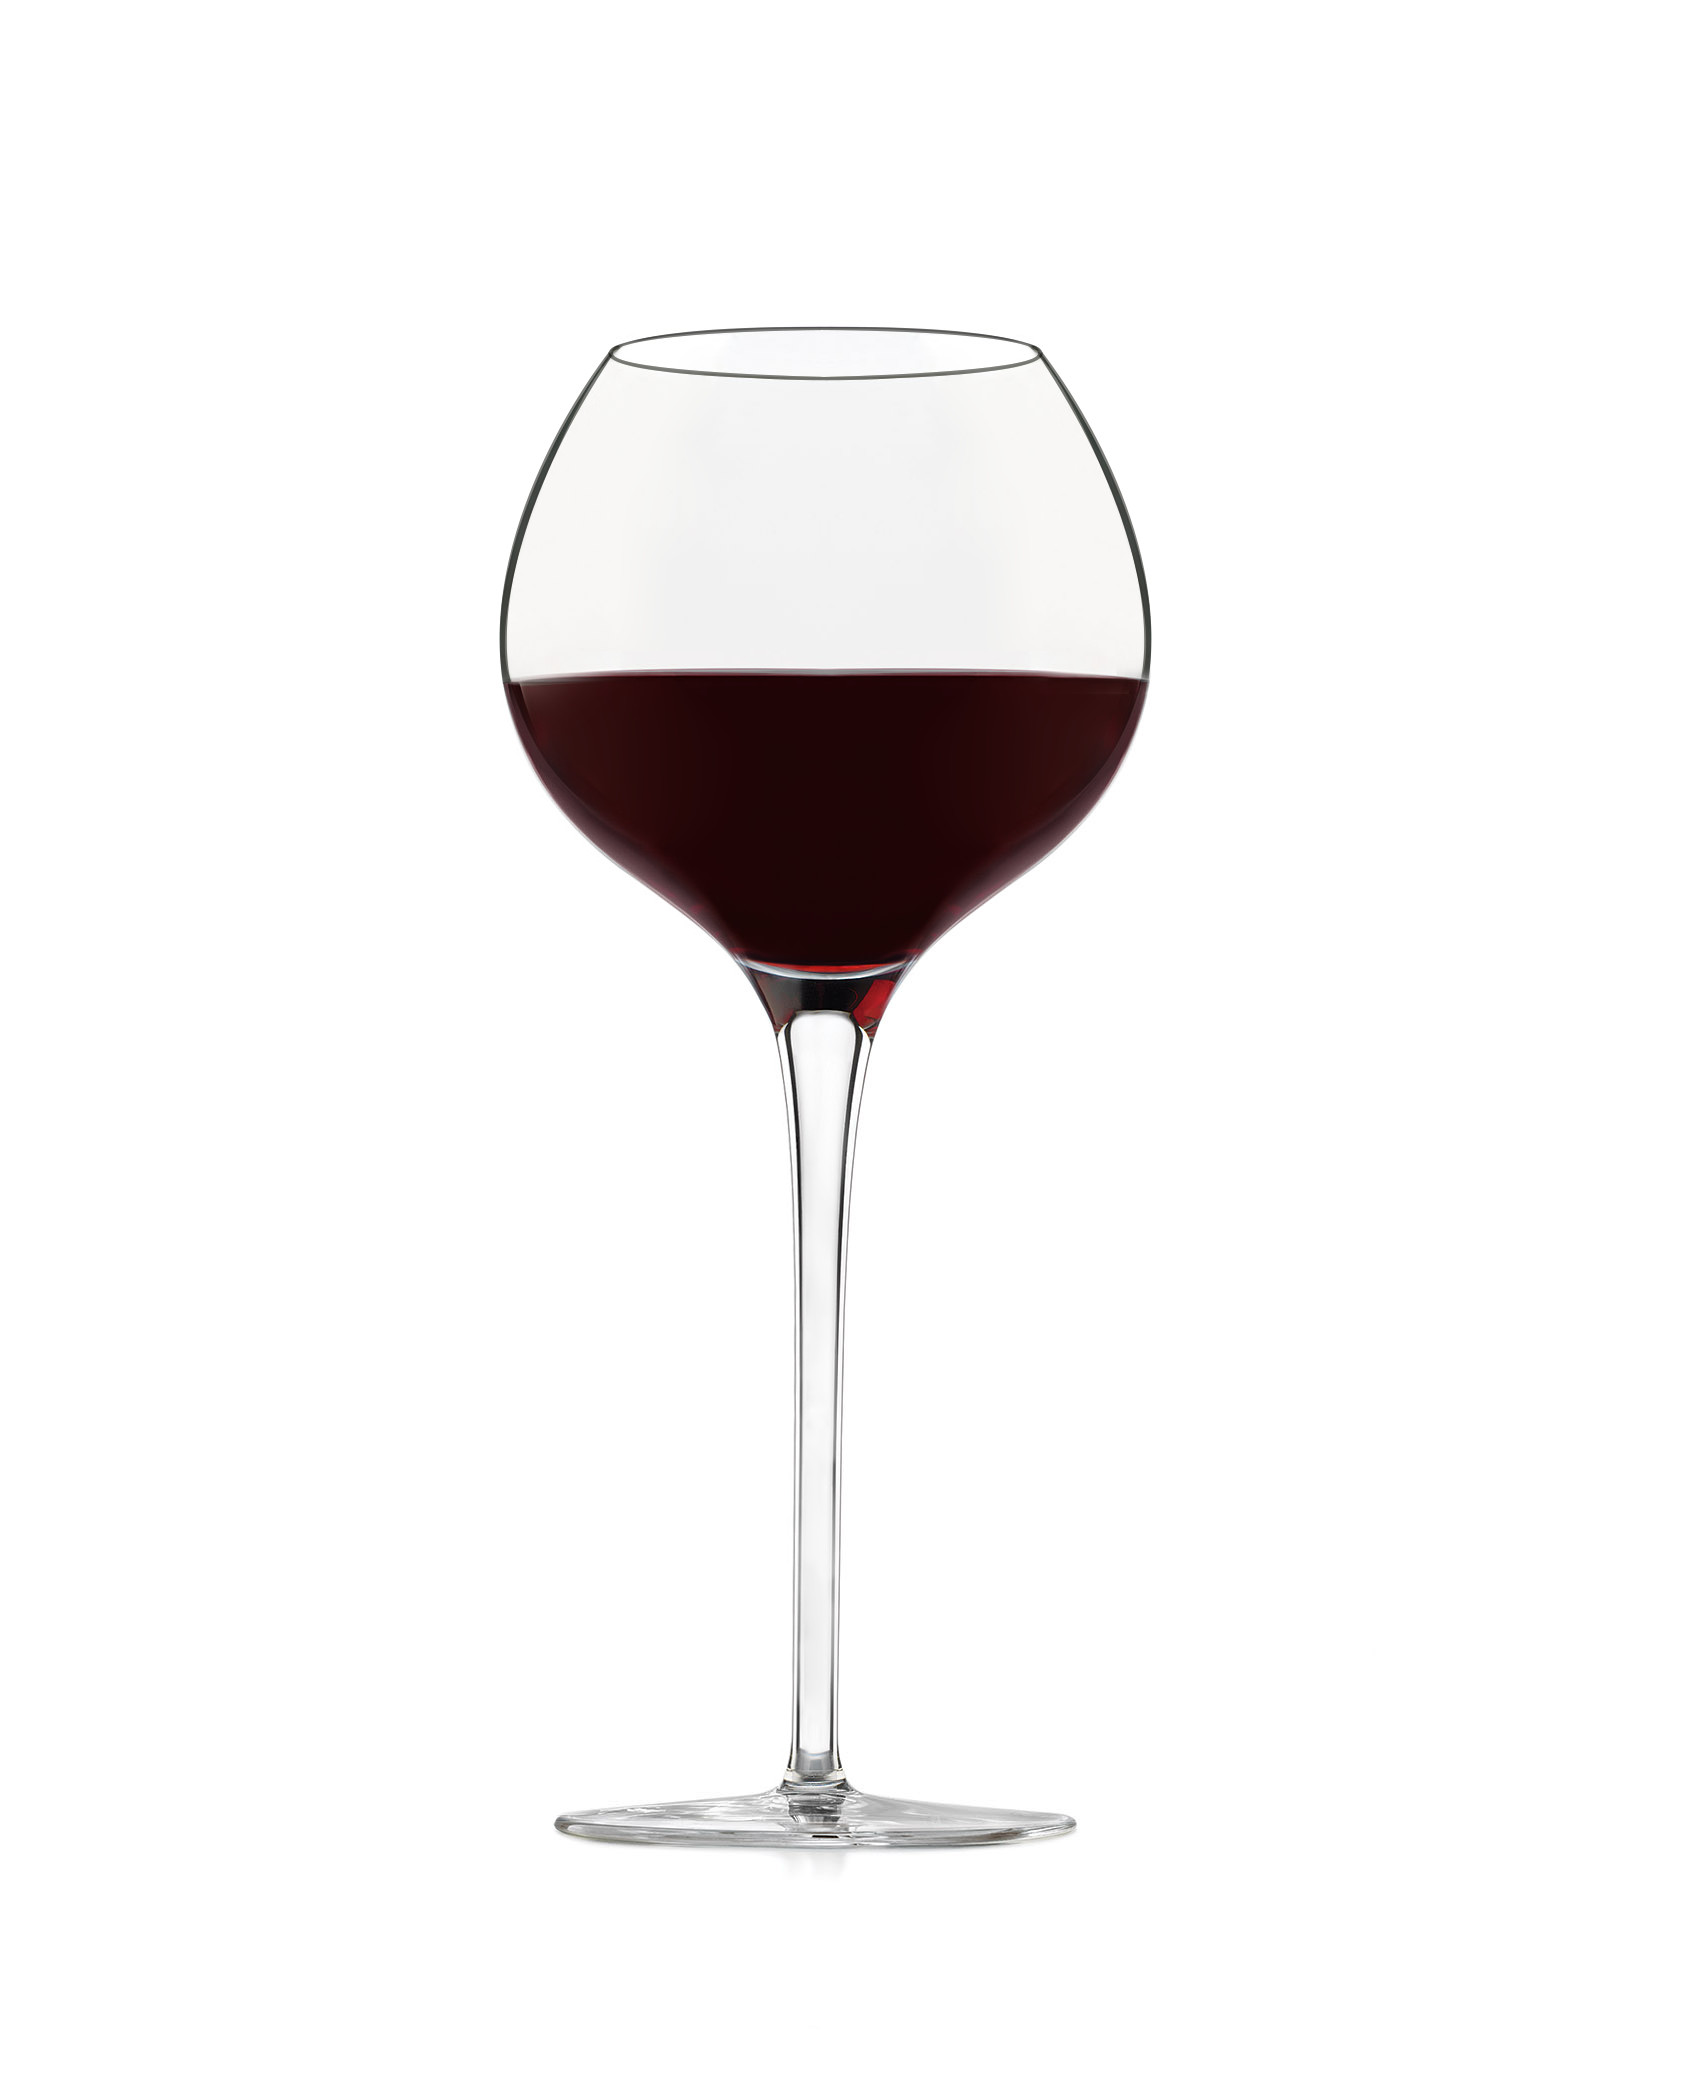 Libbey Signature Westbury Red Wine Glasses, 23.5-ounce, Set of 4 by Libbey